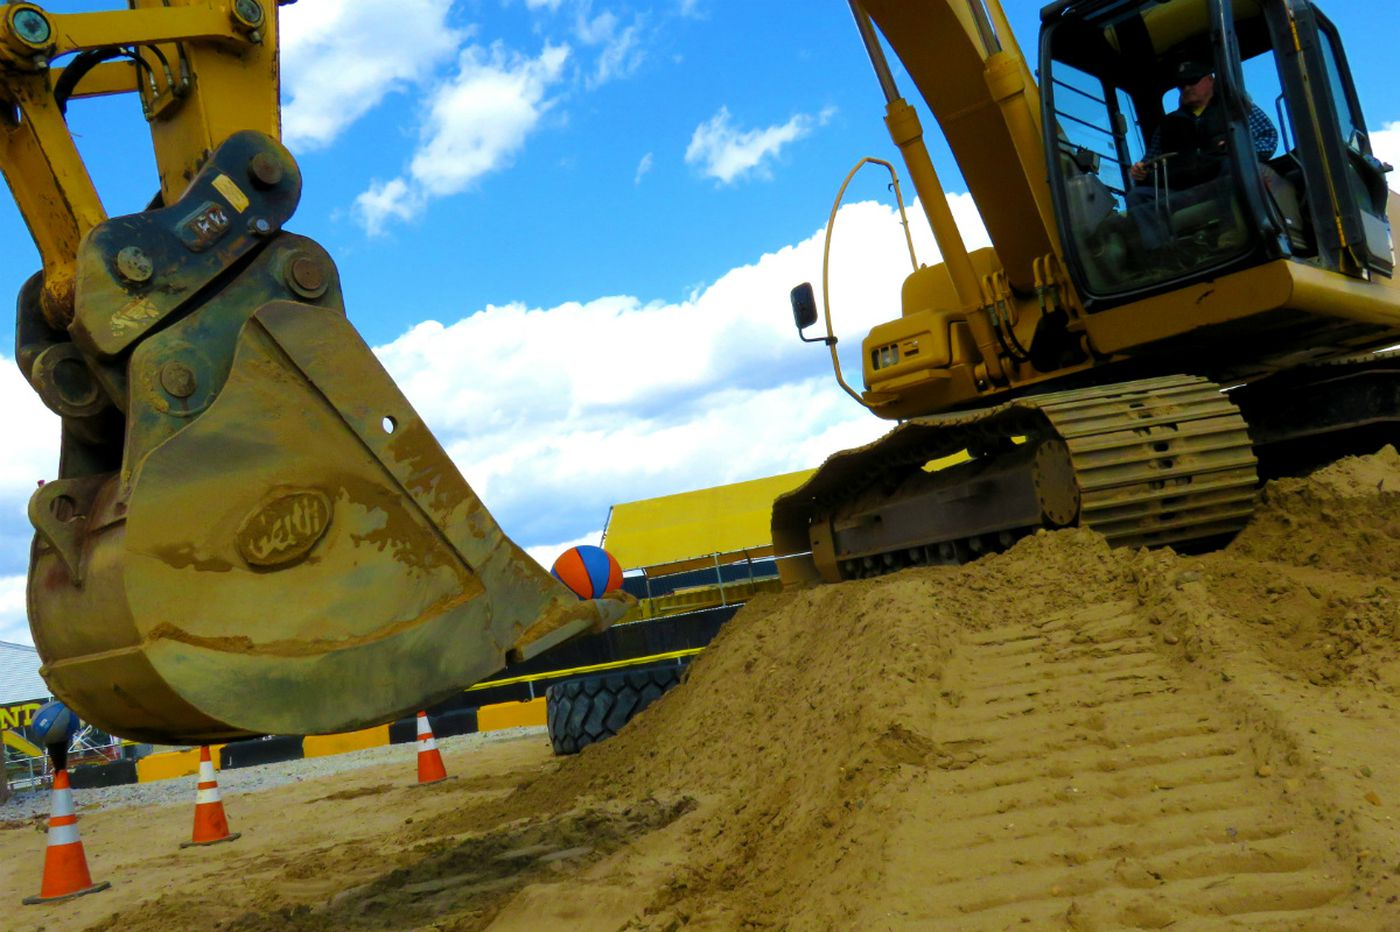 Diggerland XL gives grown-ups a chance to play with construction equipment